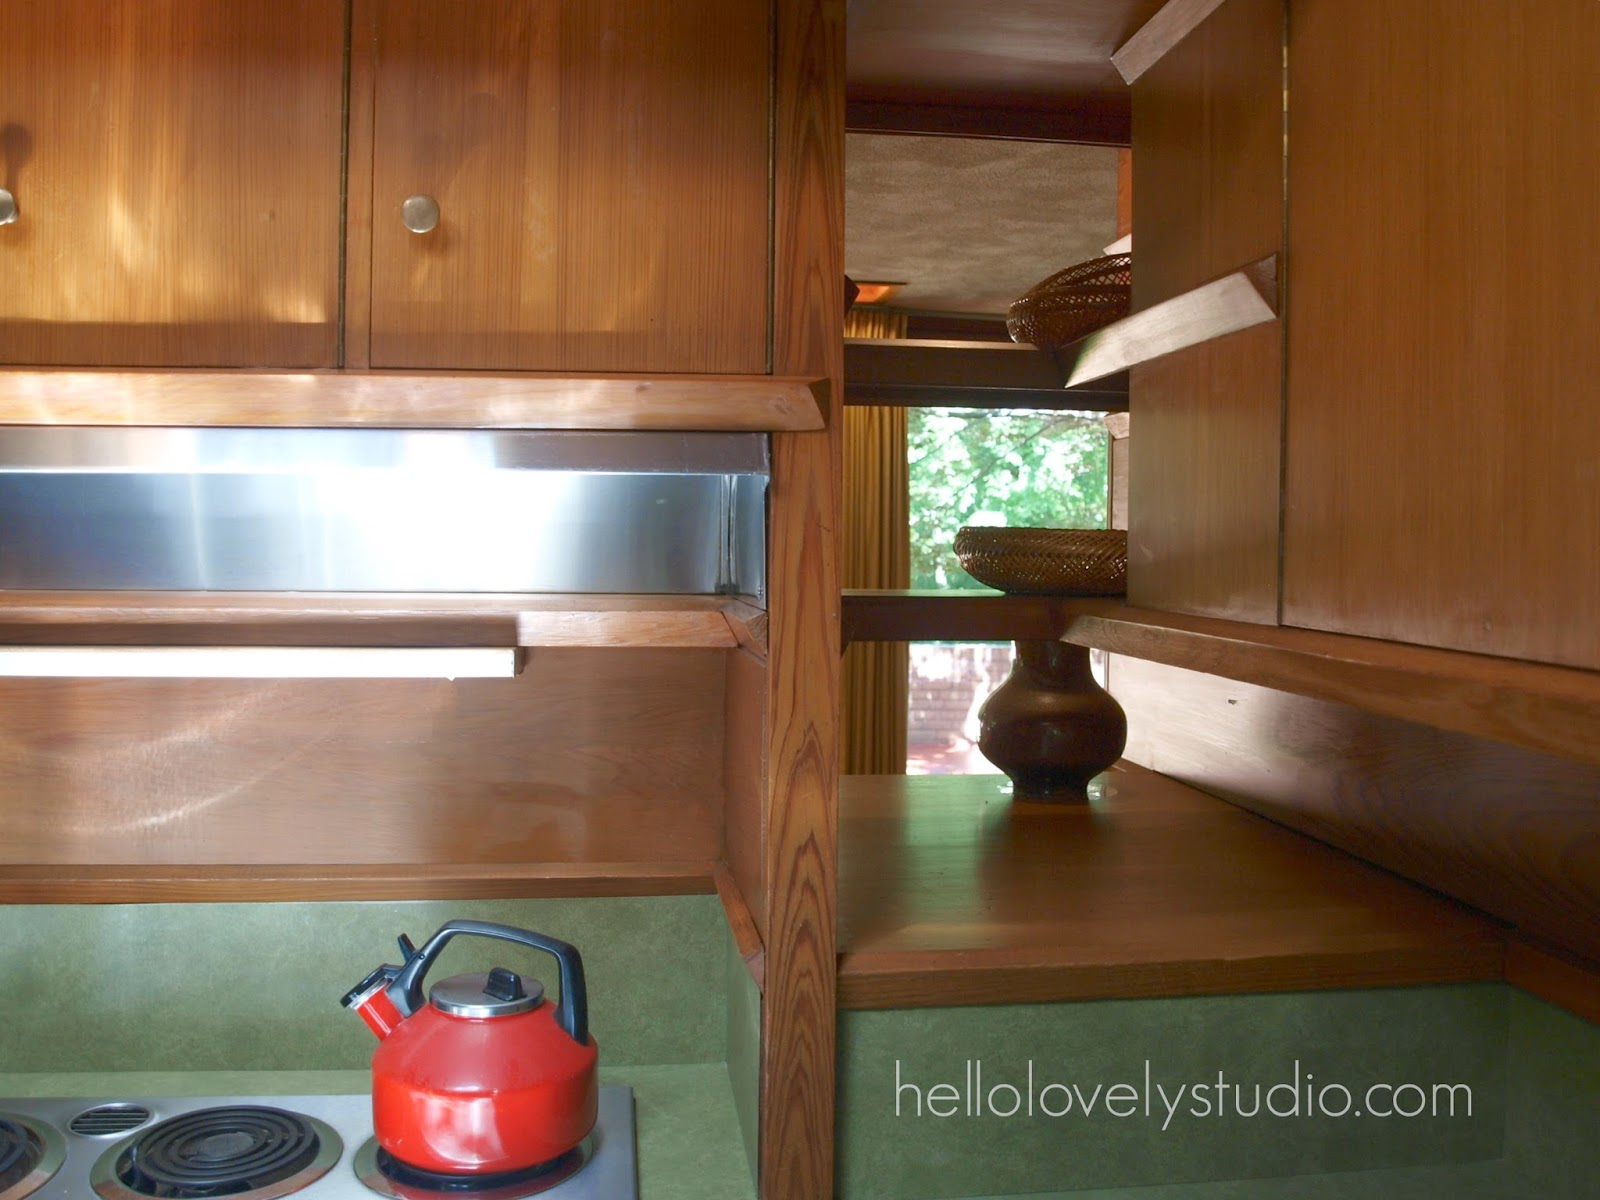 Kitchen with green laminate counter and backsplash. Frank Lloyd Wright Laurent House designed for owner Kenneth Laurent on Spring Brook Road in Rockford/ Designed to be wheelchair-accessible. #flw #franklloydwrighthouse #midcenturymodernarchitecture